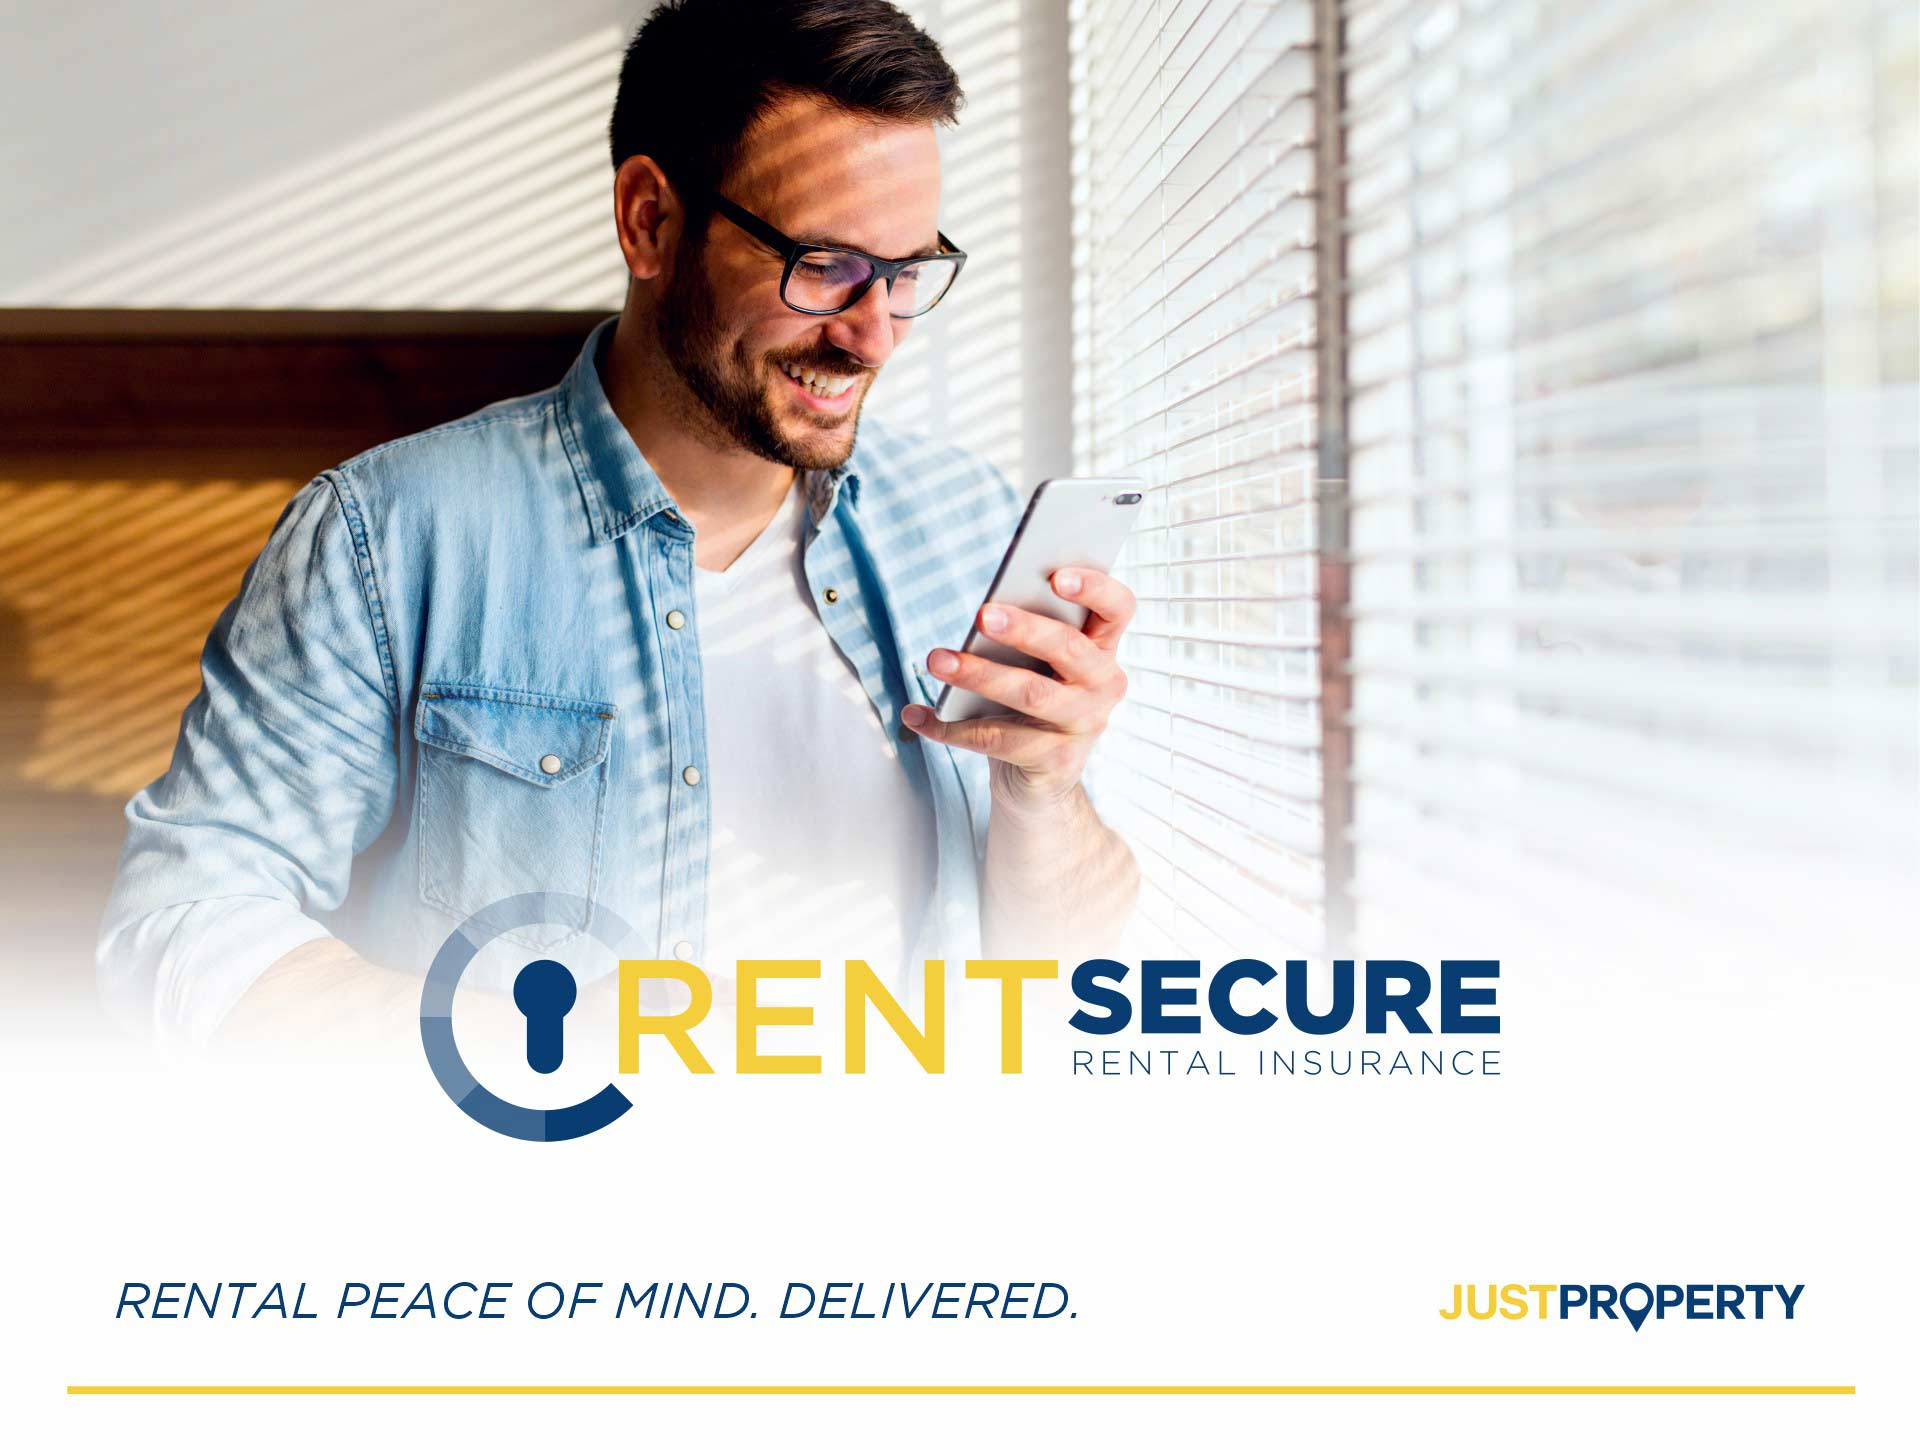 Do You Need Rental Insurance Cover?